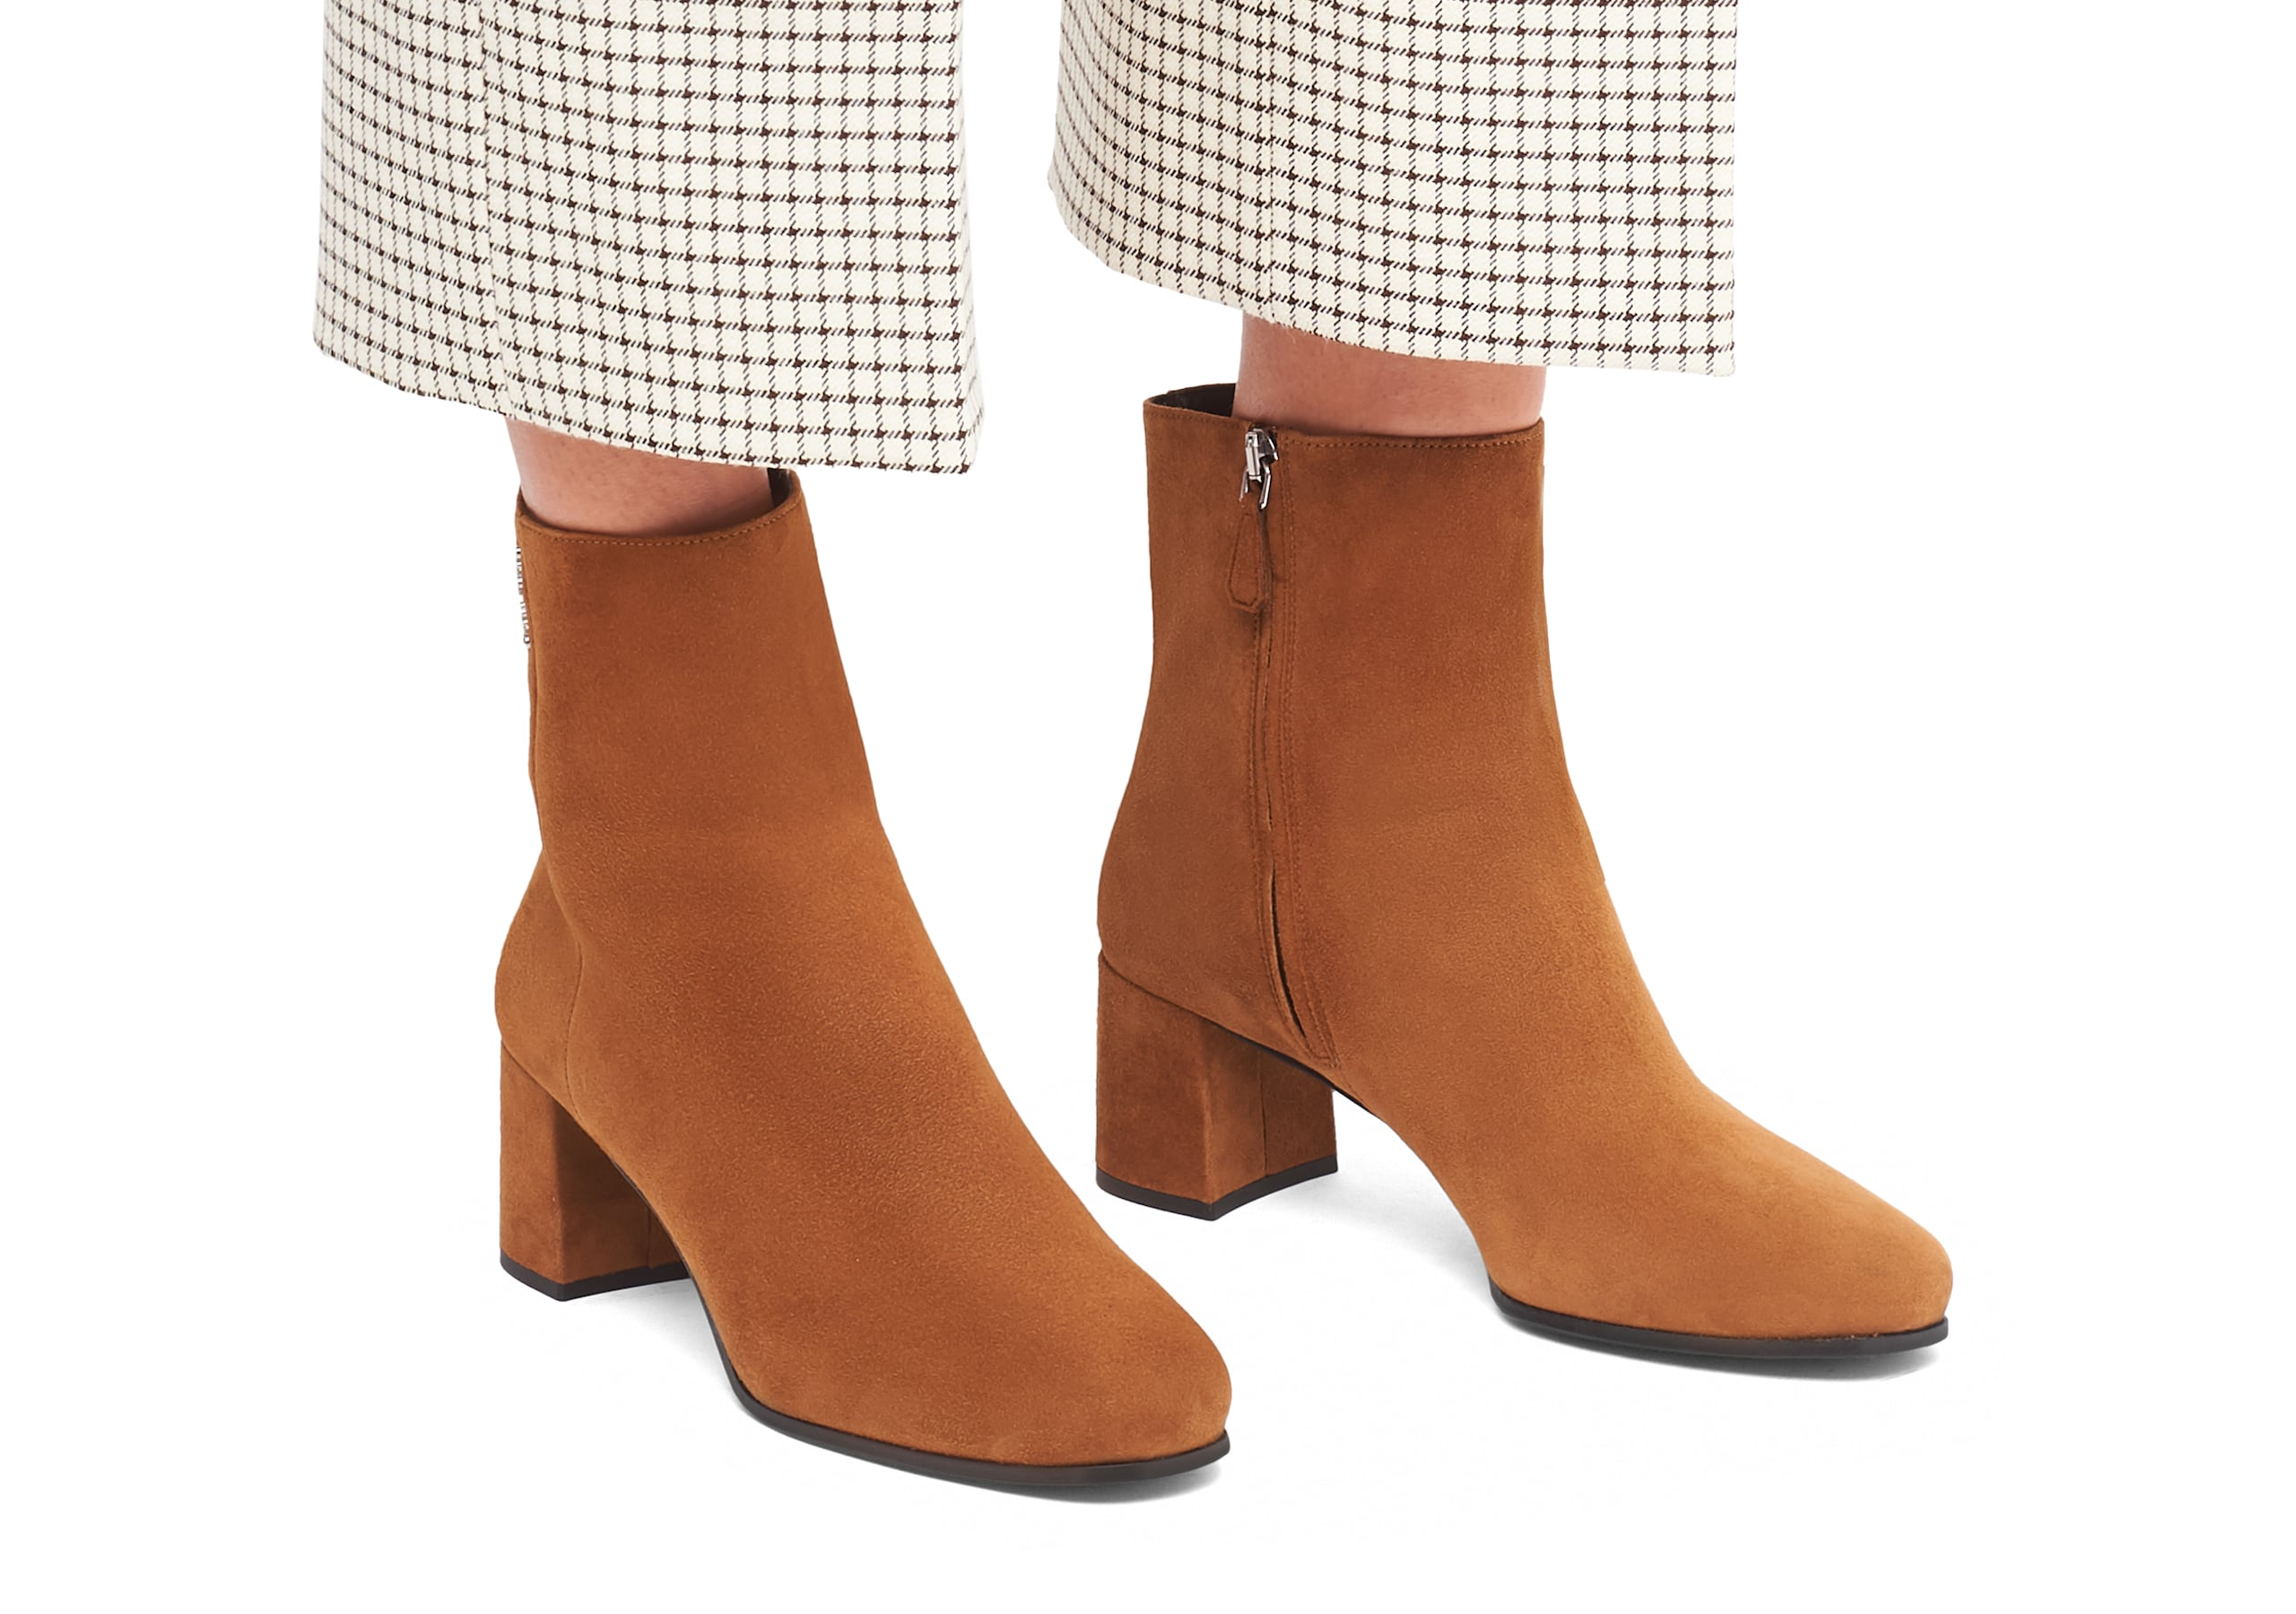 Ellie 55 Church's Suede Heeled Boot Brown